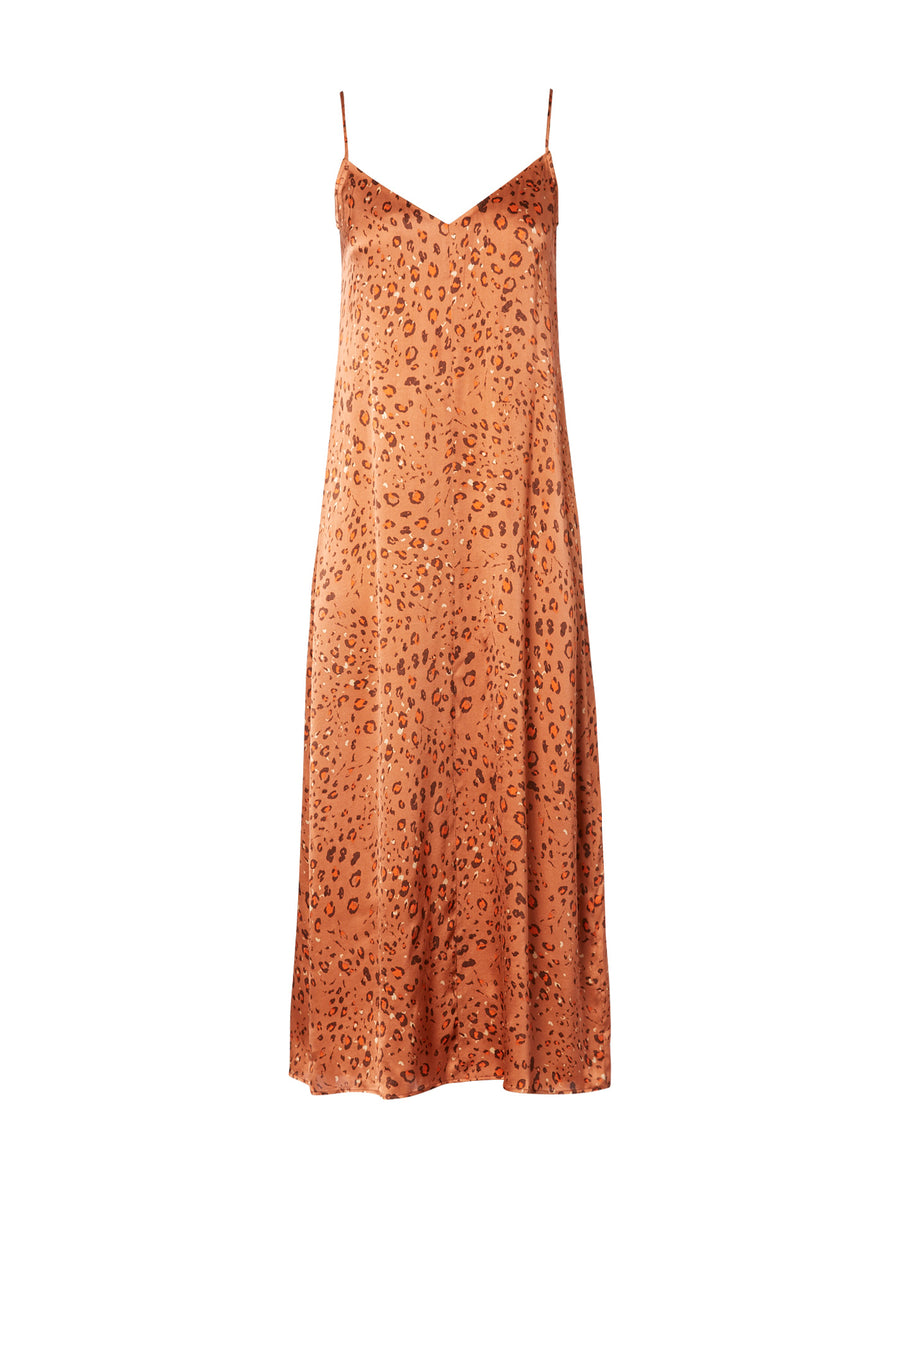 Silk Leopard Dress Burnt, v- neckline, spaghetti straps, midi length, loose fit